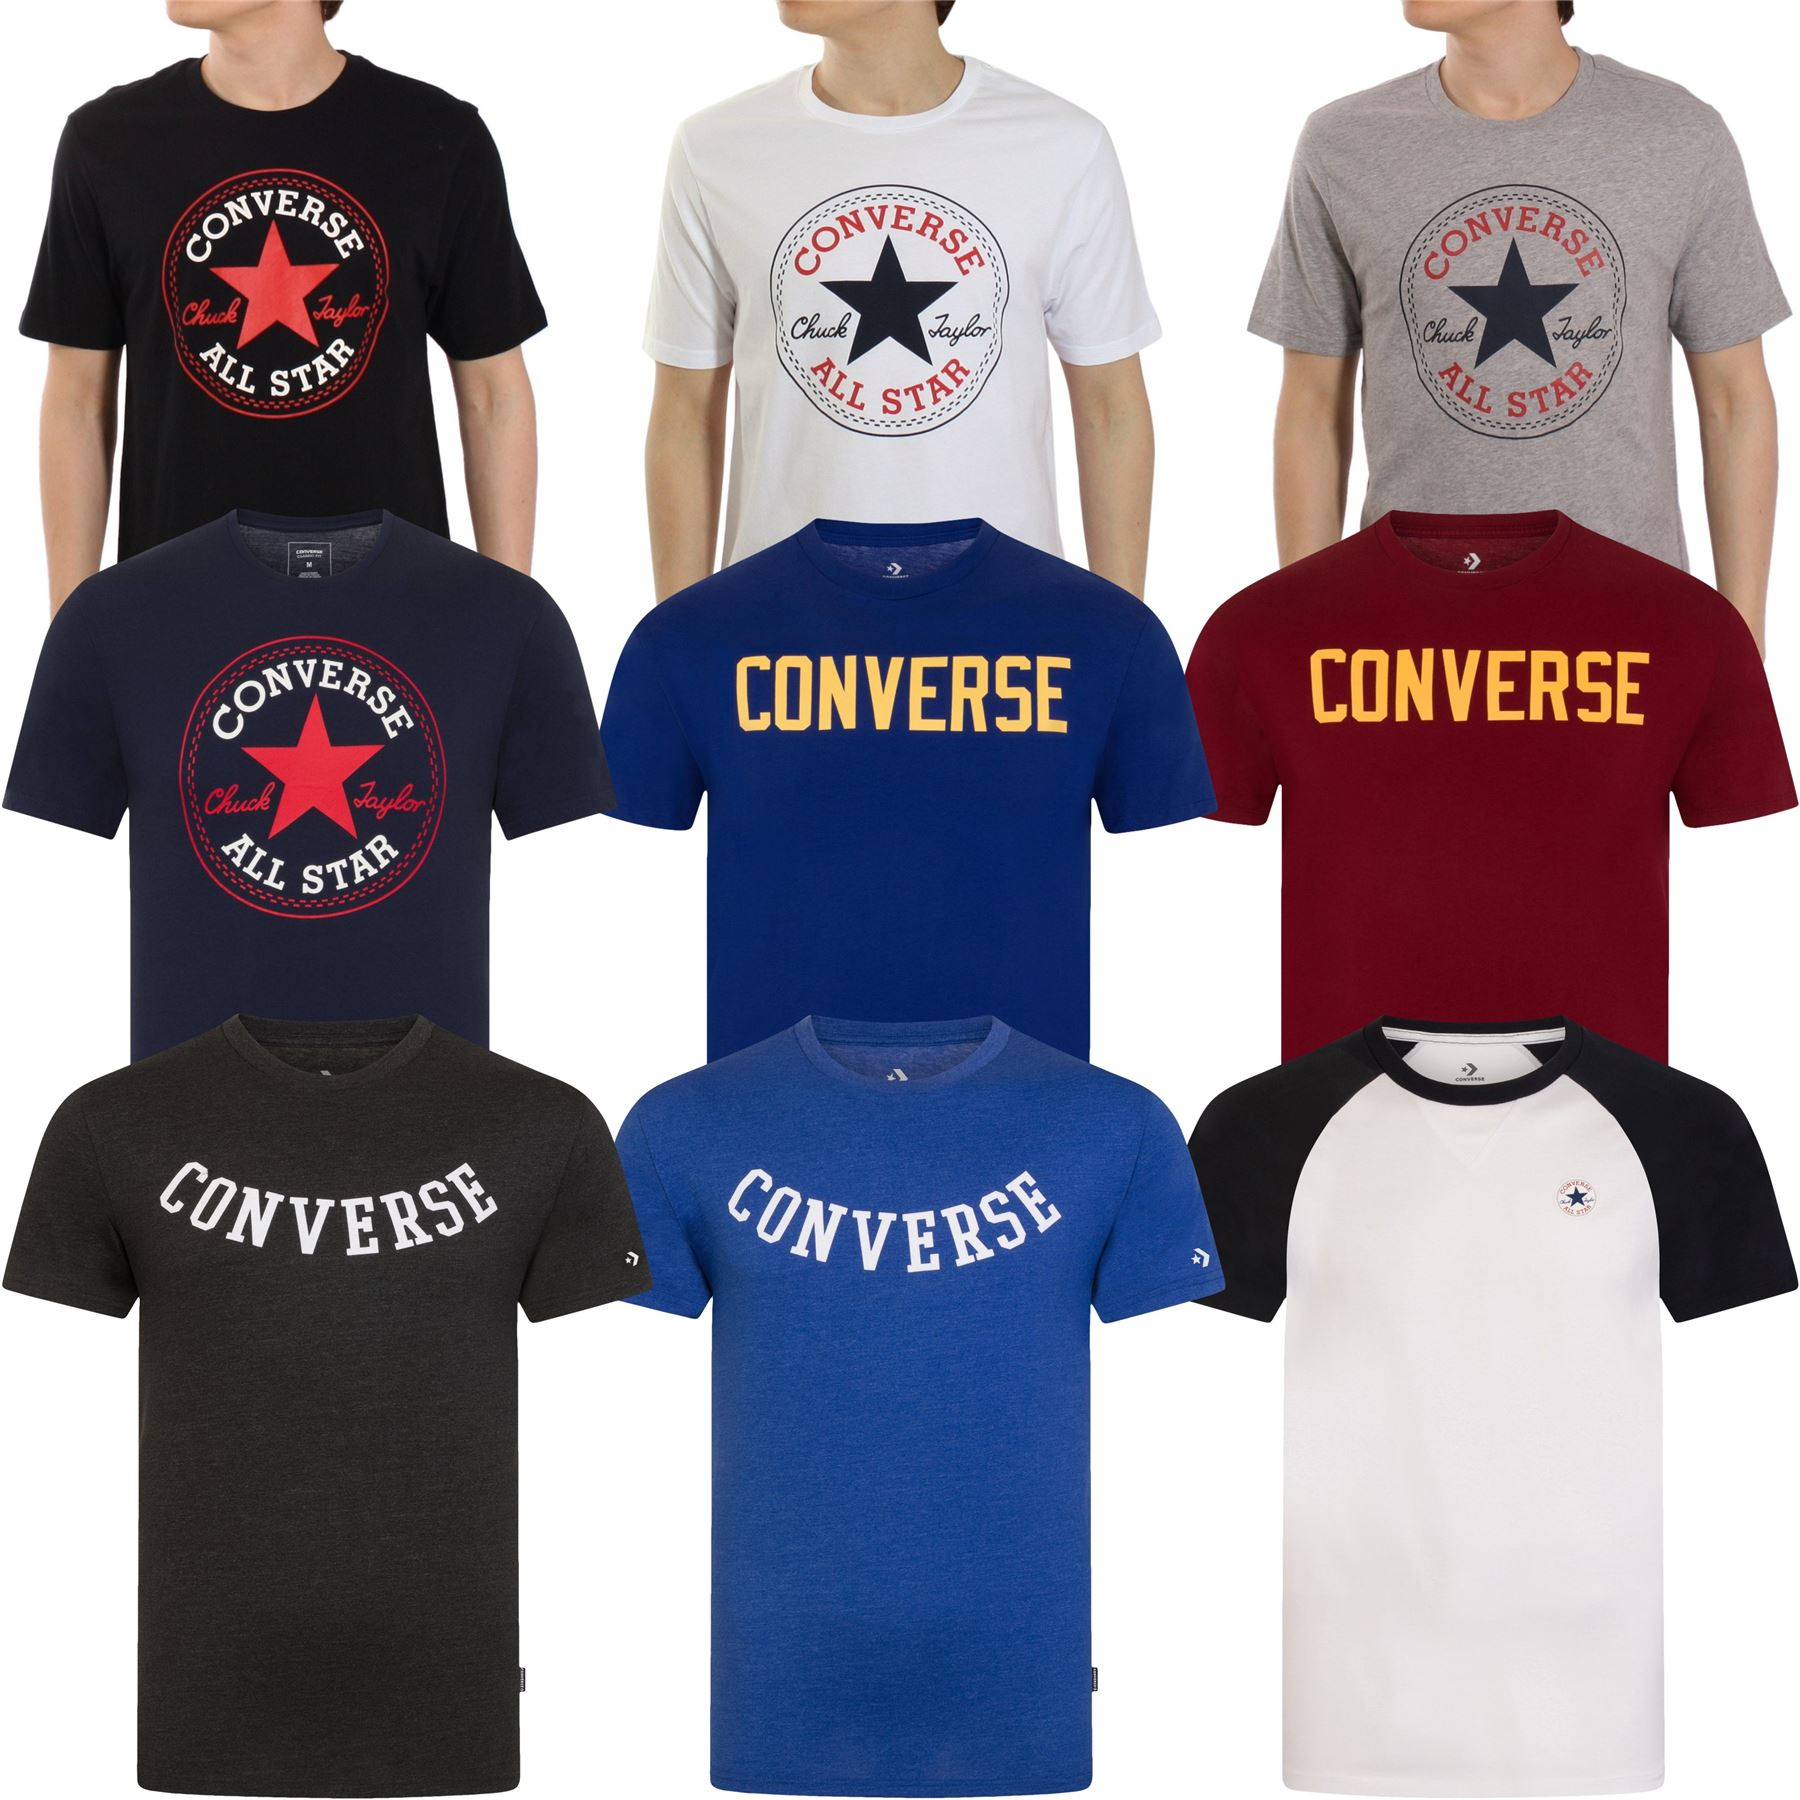 Details about Converse T Shirt & Tops All Star Logo Chuck Assorted Styles S, M, L, XL